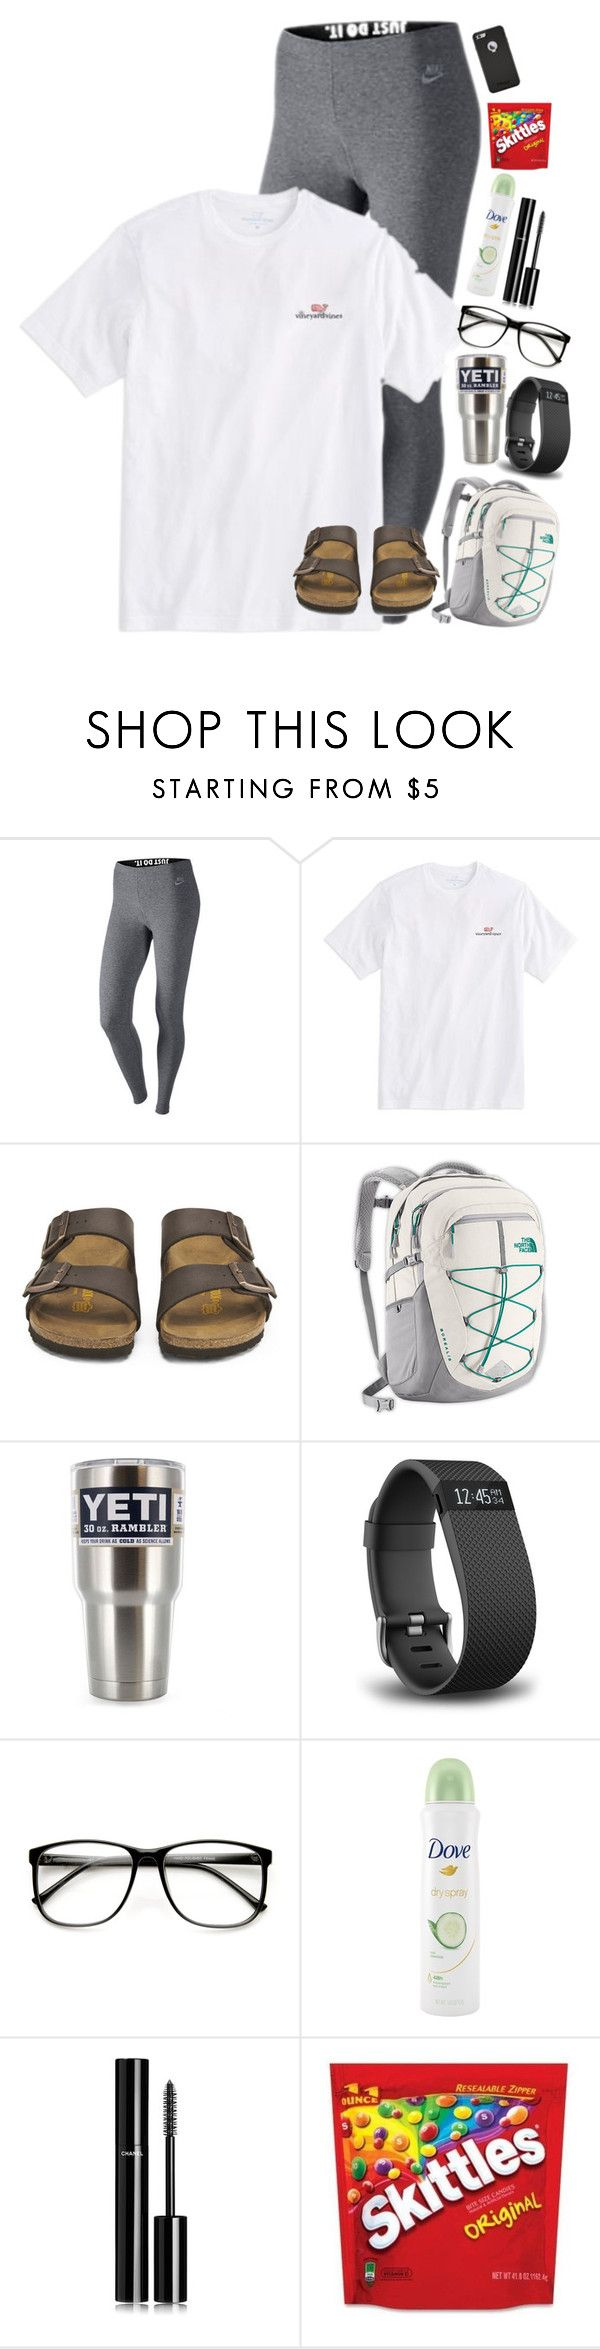 """Recreating my old sets!"" by lacrosse-19 ❤ liked on Polyvore featuring NIKE, Vineyard Vines, Birkenstock, The North Face, Fitbit, Dove and Chanel"